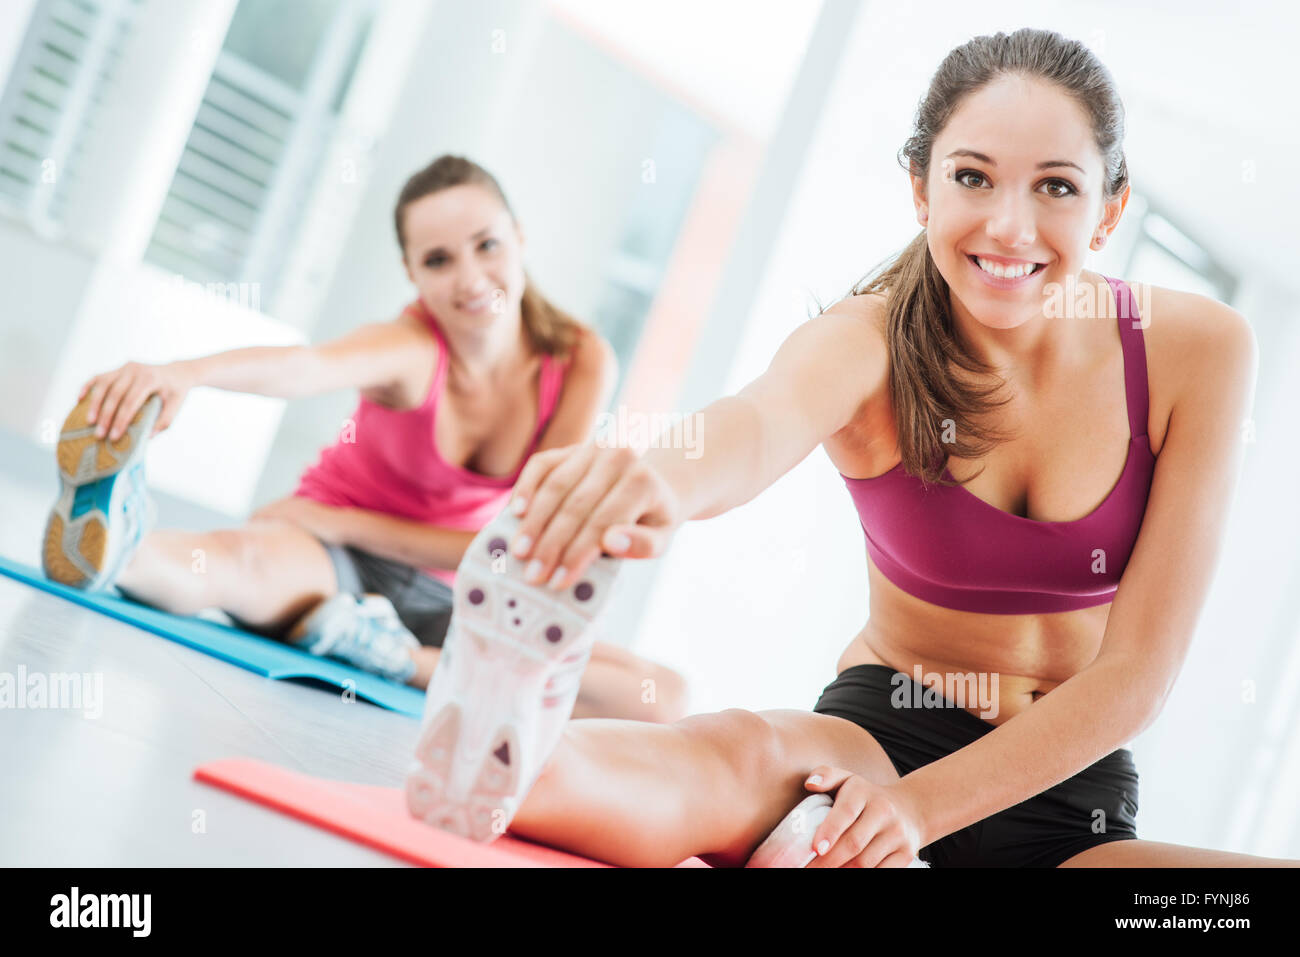 Smiling young women at the gym doing a stretching exercise for legs on a mat, fitness and health concept - Stock Image